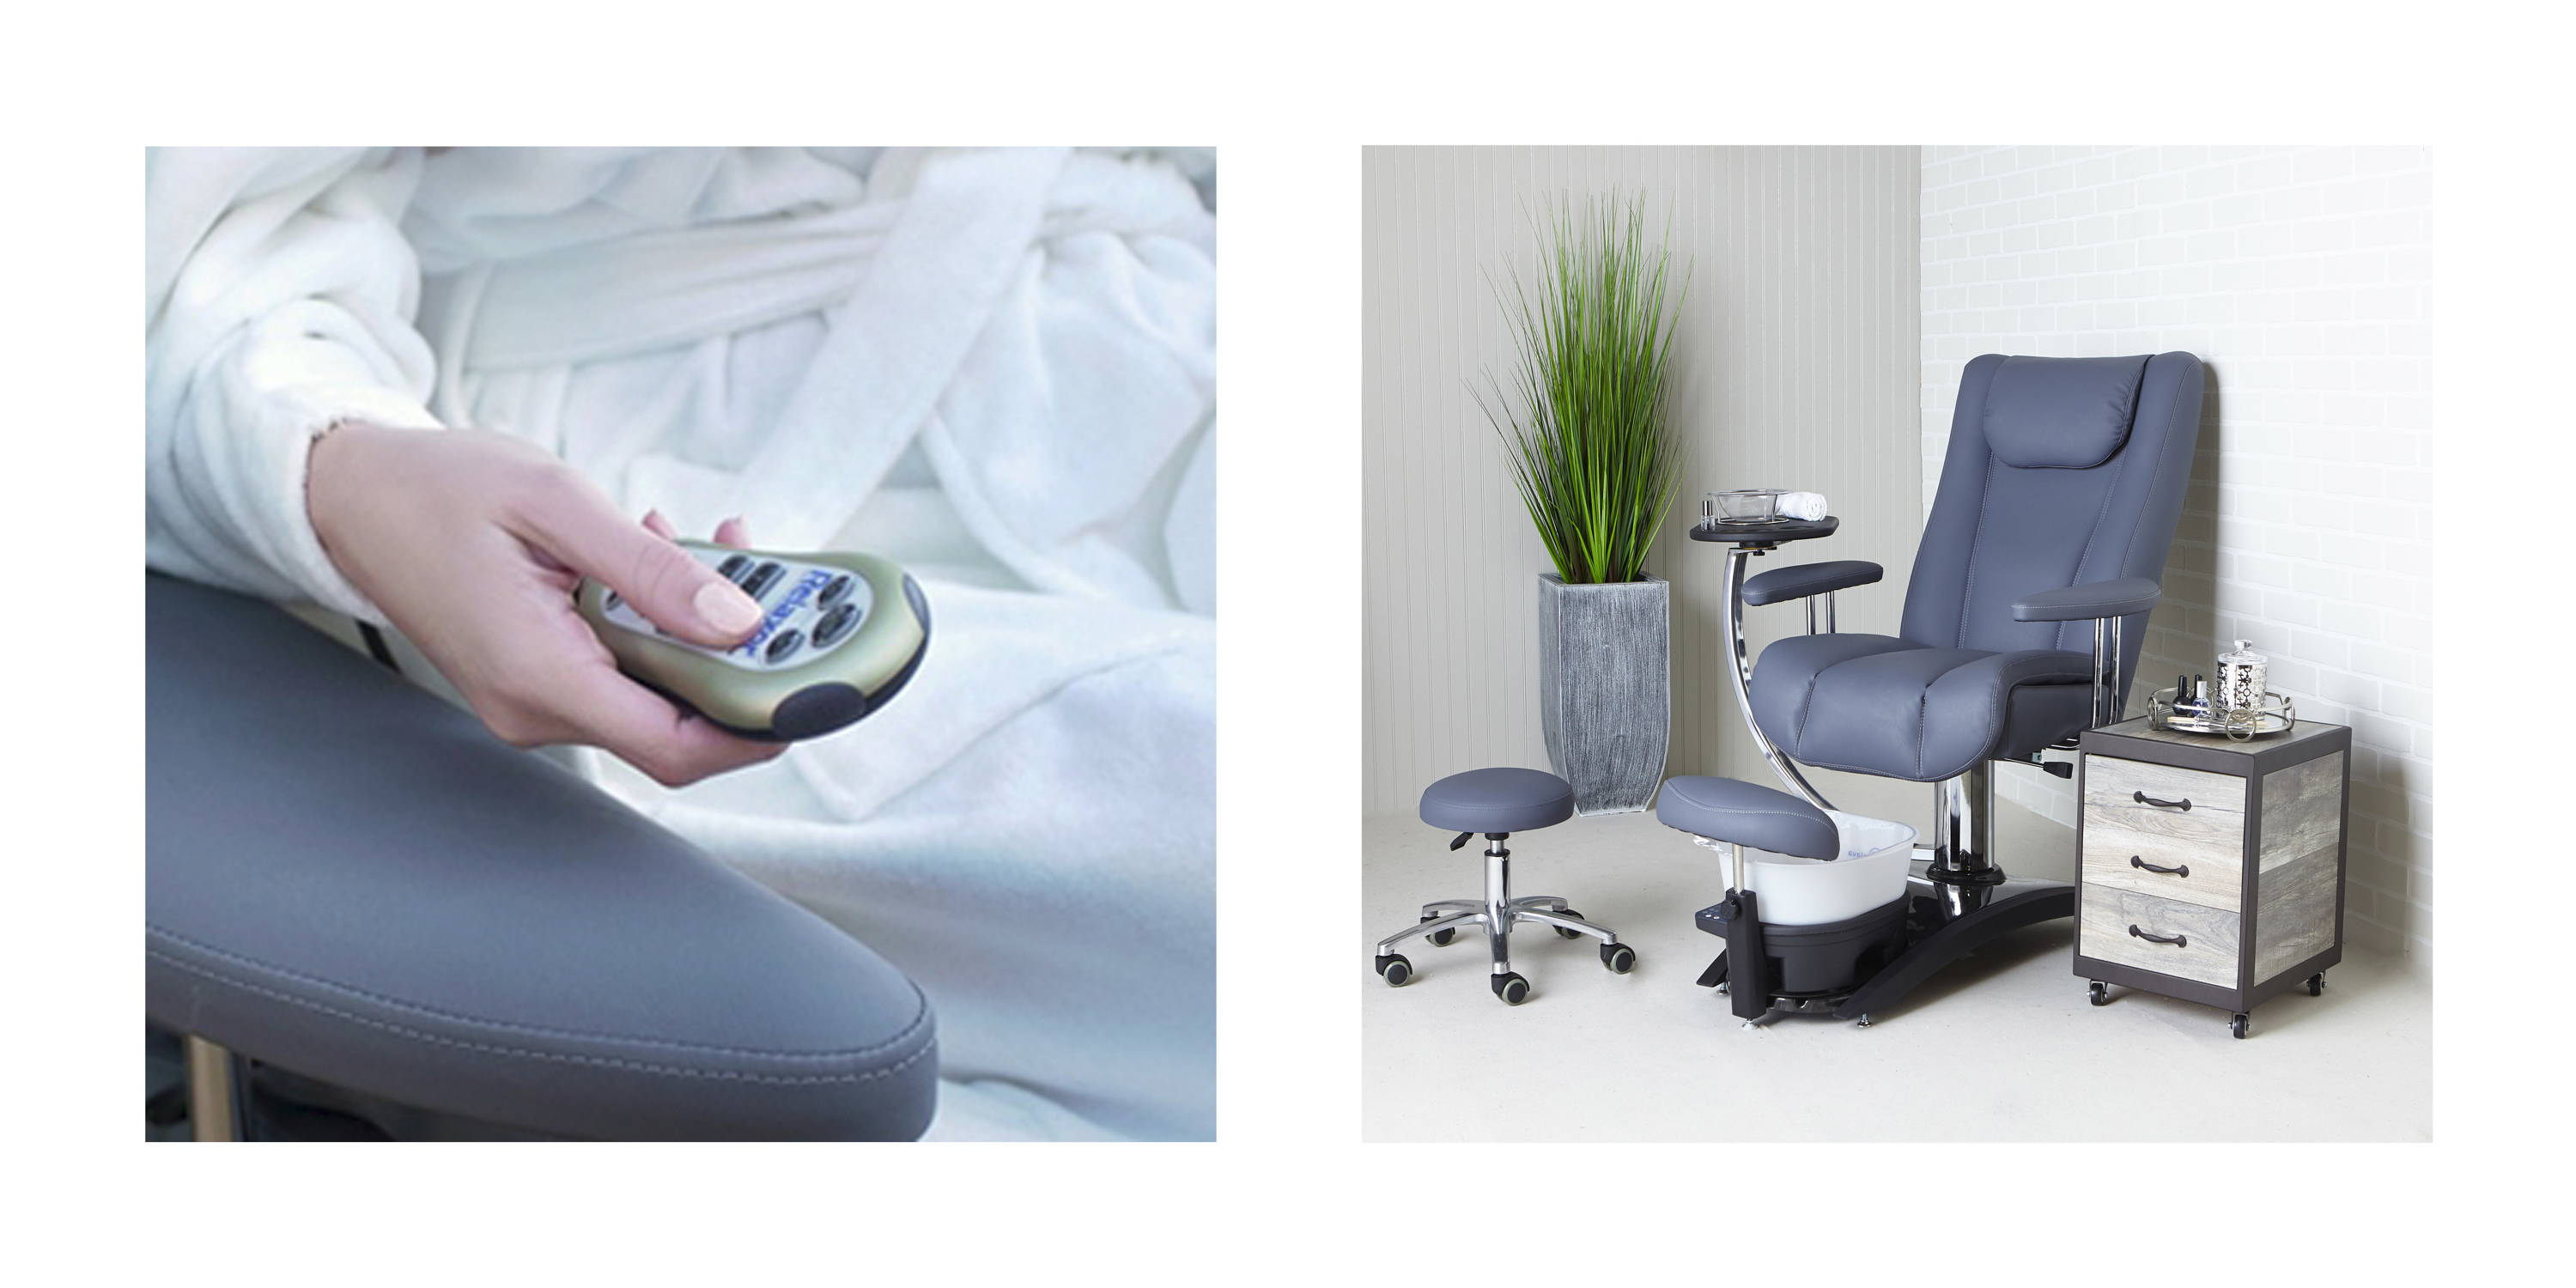 Embrace Pedicure Spa Chair by Belava